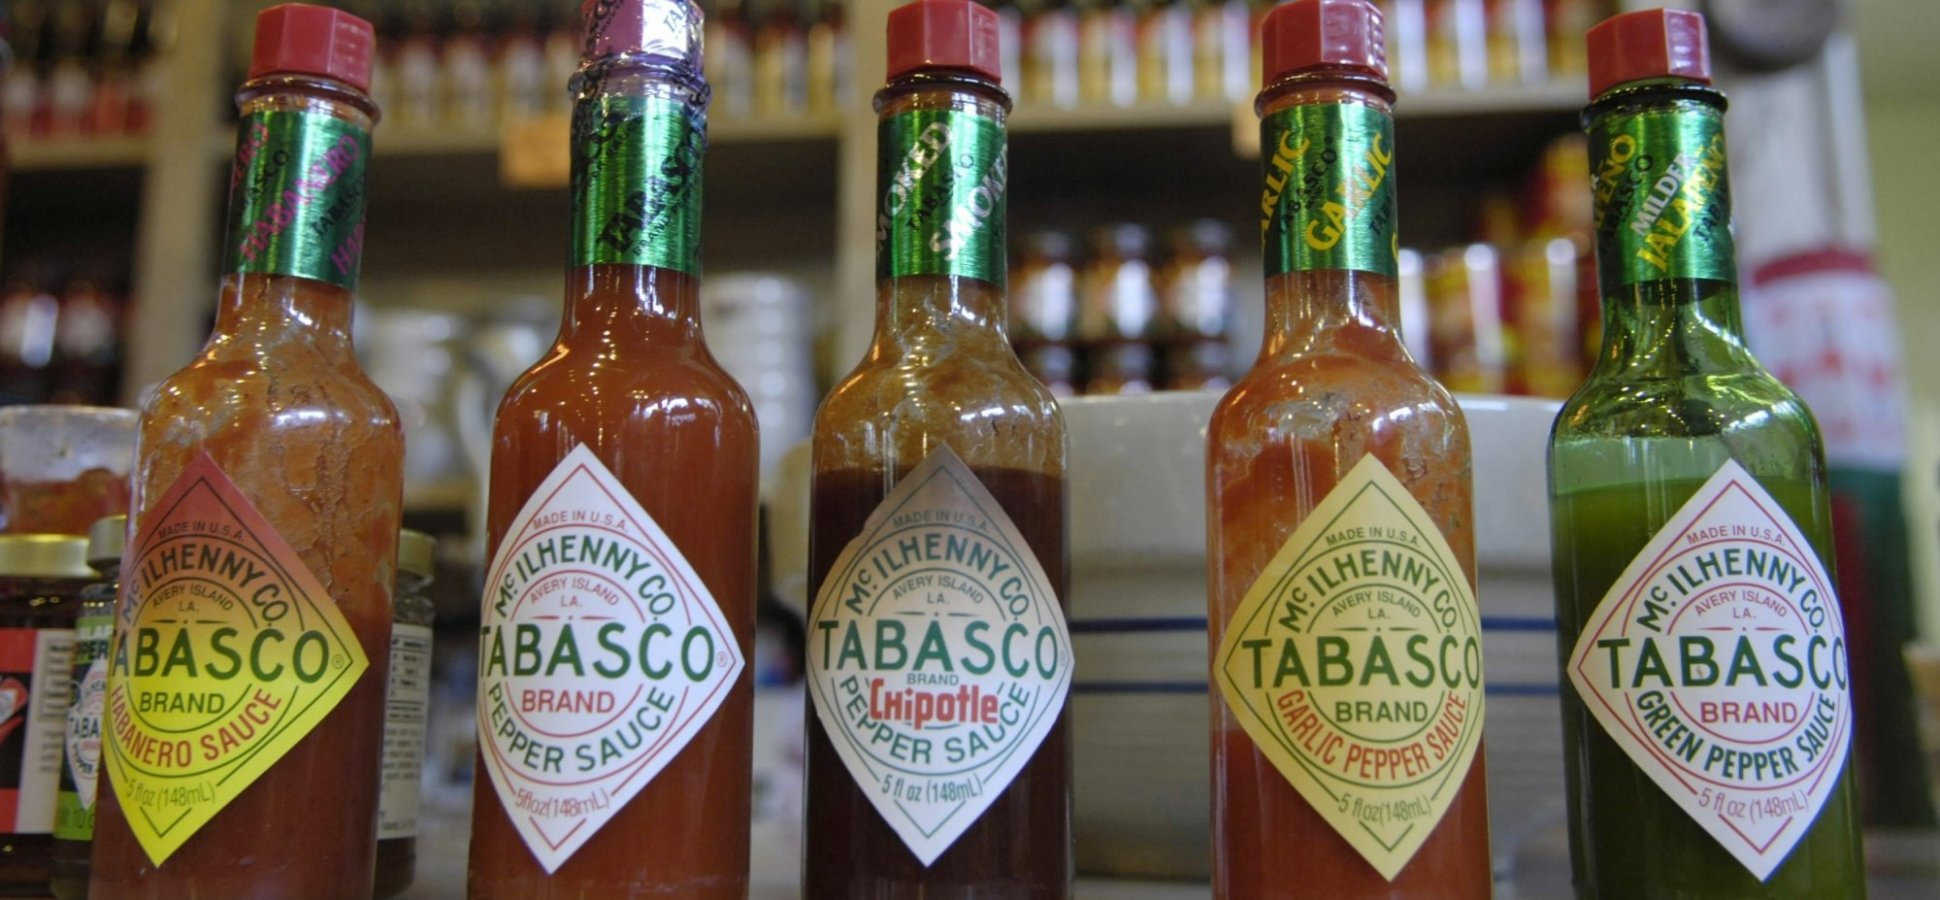 Tabasco Just Released a Premium Version of Its Sauce (at an Astoundingly Premium Price) | Inc.com